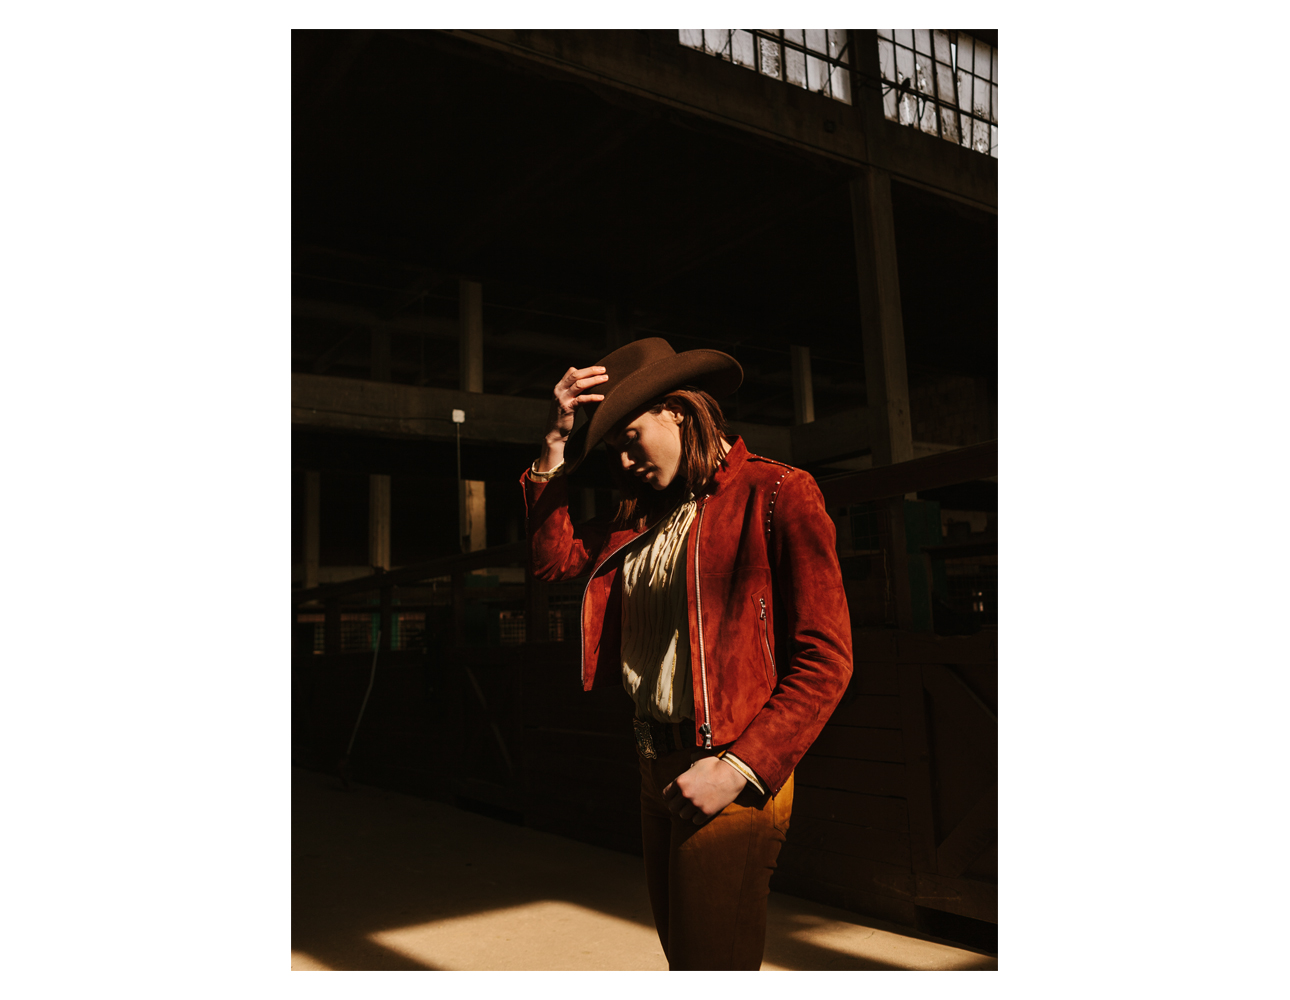 Fort Worth Texas, photographed for enRoute Magazine. Brad Torchia is an LA-based editorial and commercial photographer.